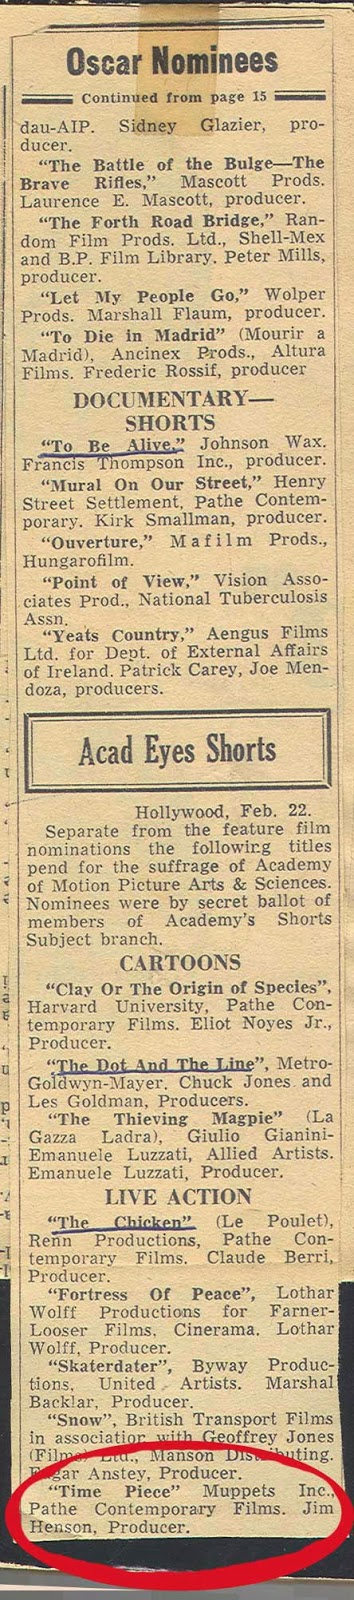 Variety 1966 Academy Award Nominees Short subject